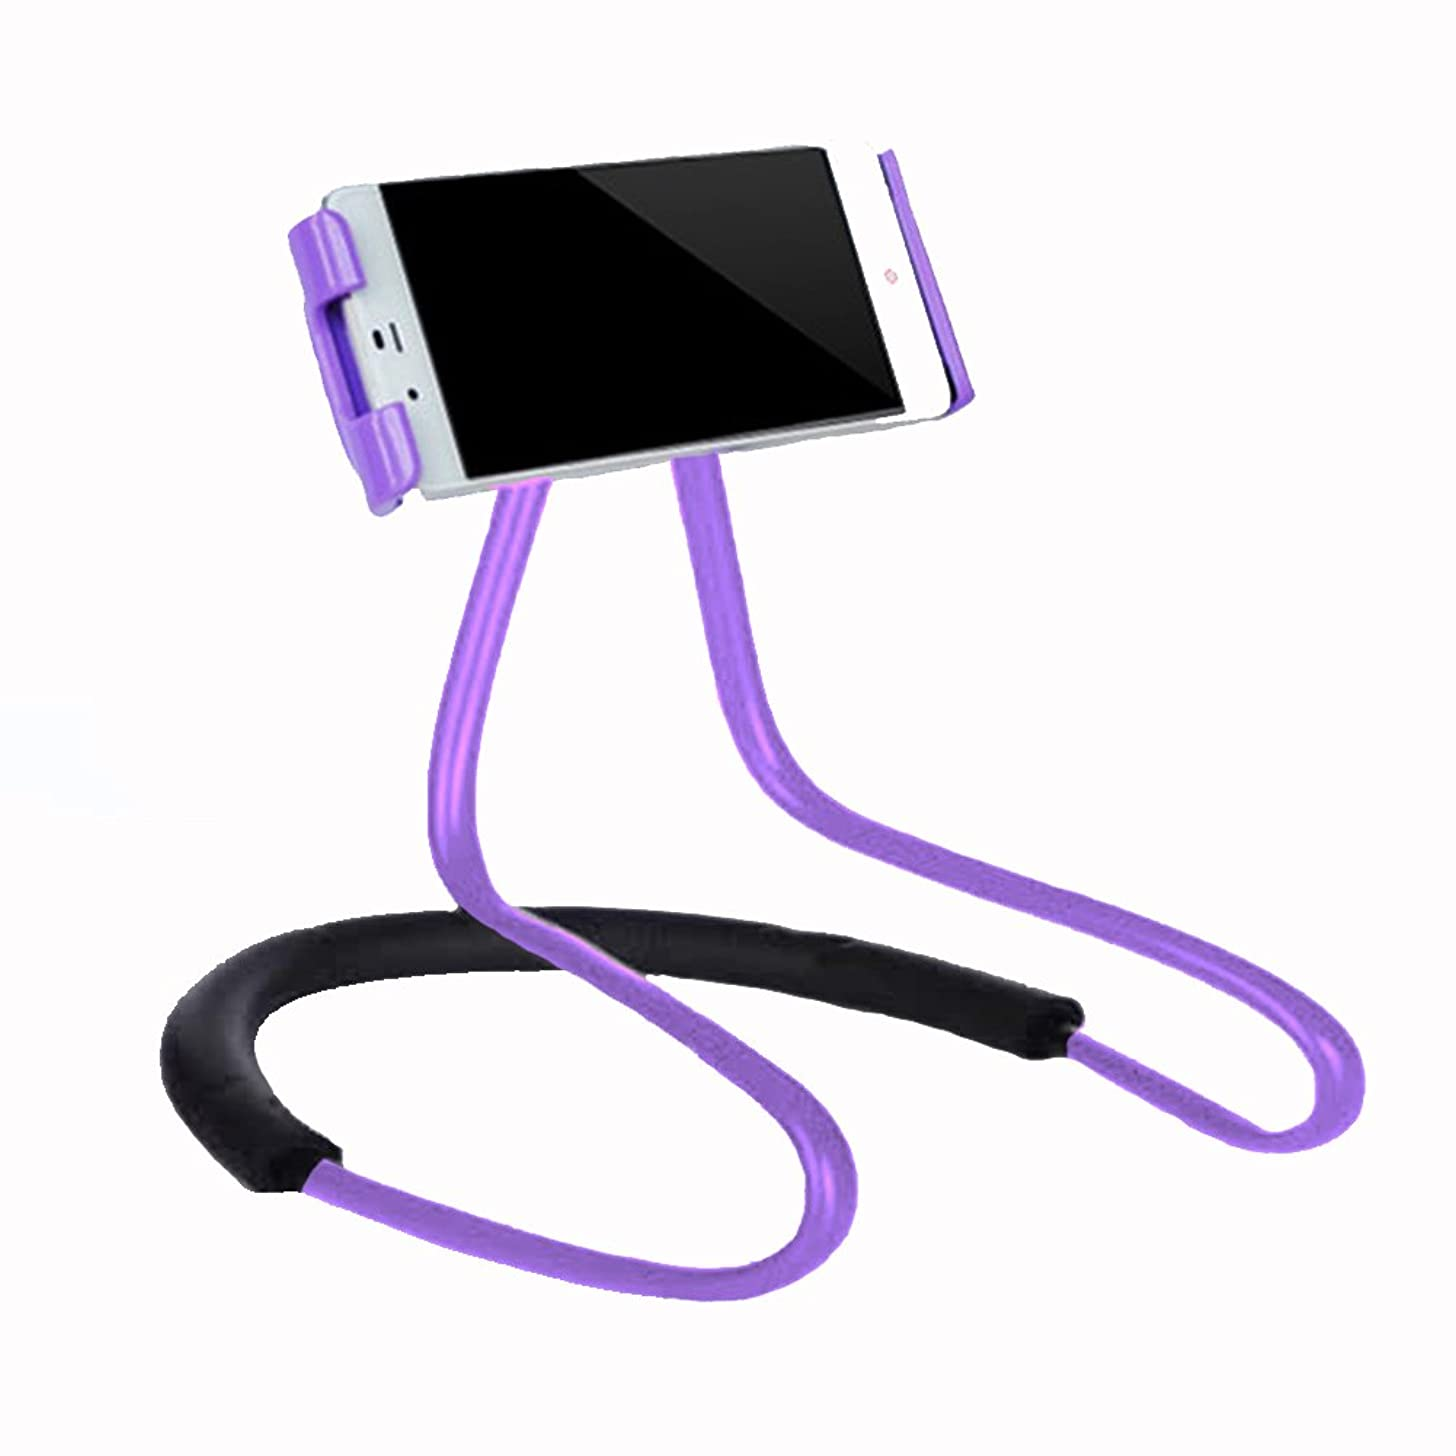 Lazy Cell Phone Holder - Universal Phone Holder to Wear Around neck Lazy Bracket Free Rotating Smart Mobile Phone Mount Stand